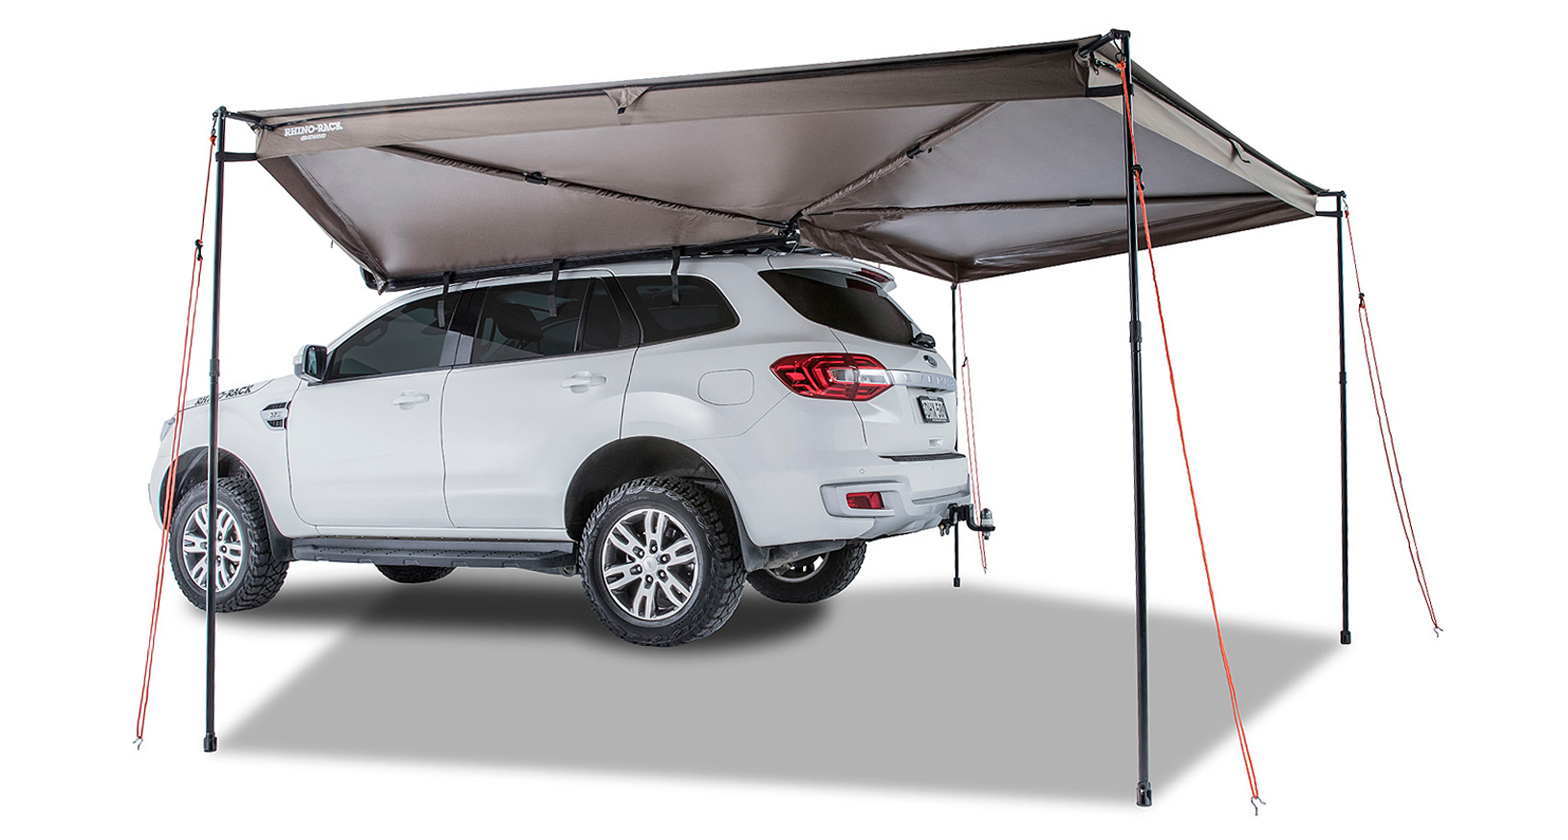 NEW Rhino-Rack Batwing Awning Left Side Mounting